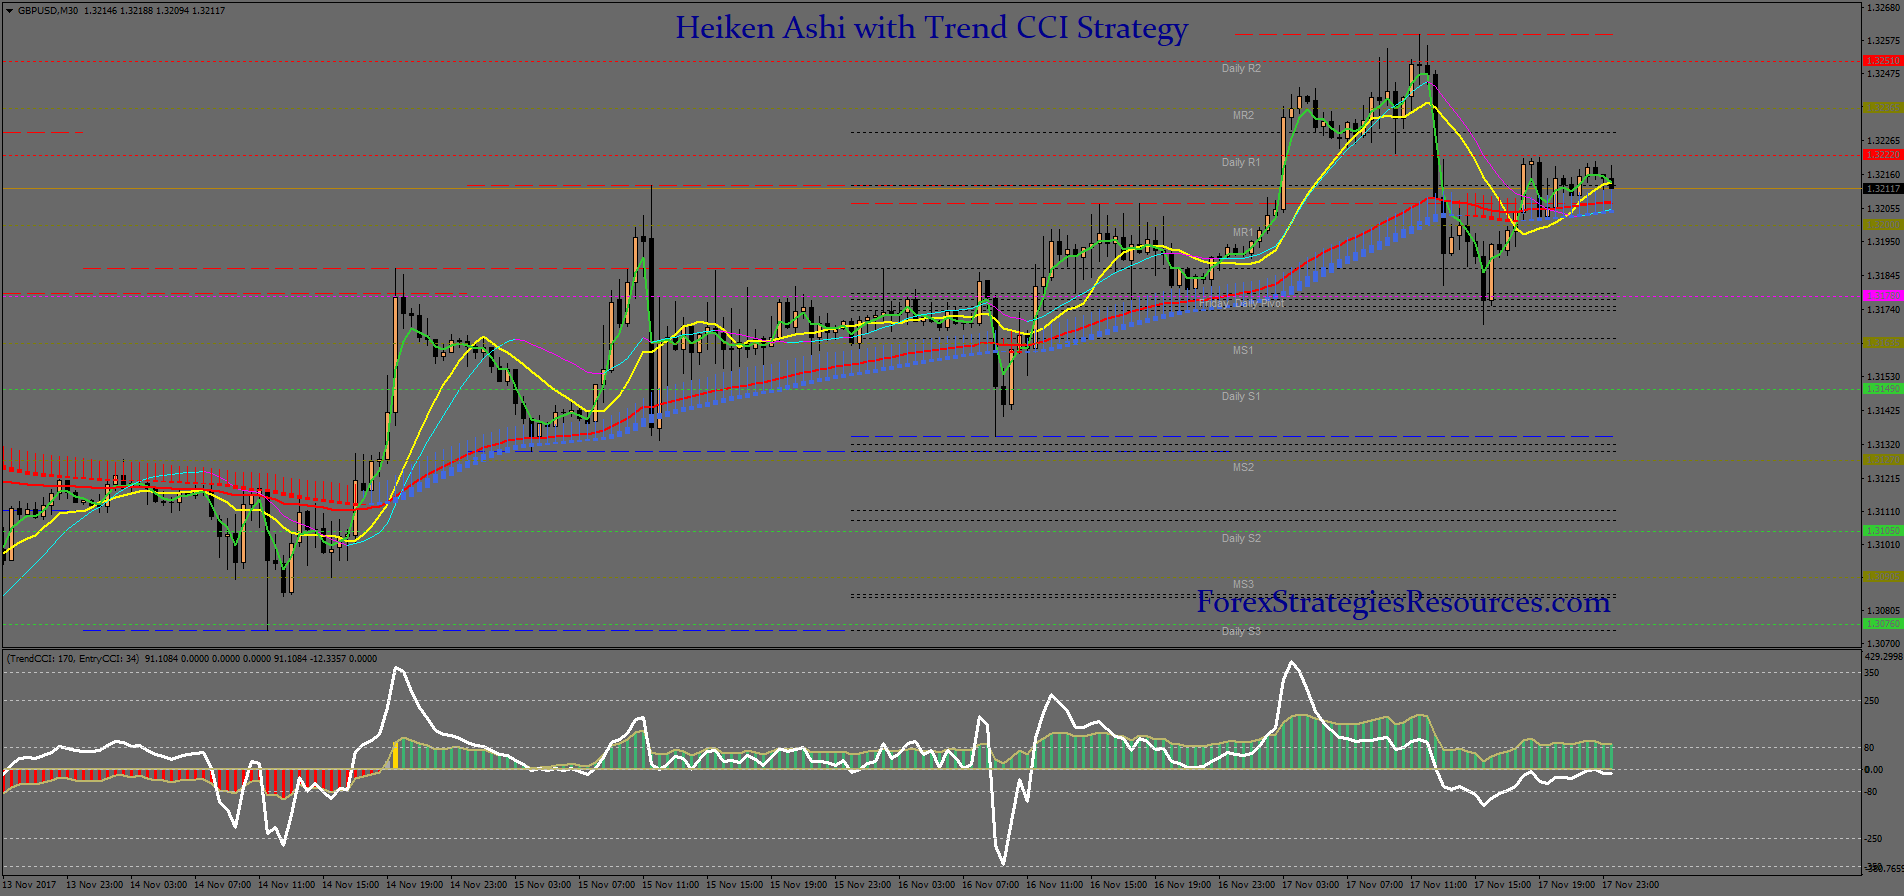 Heiken Ashi with Trend CCI Strategy - Forex Strategies